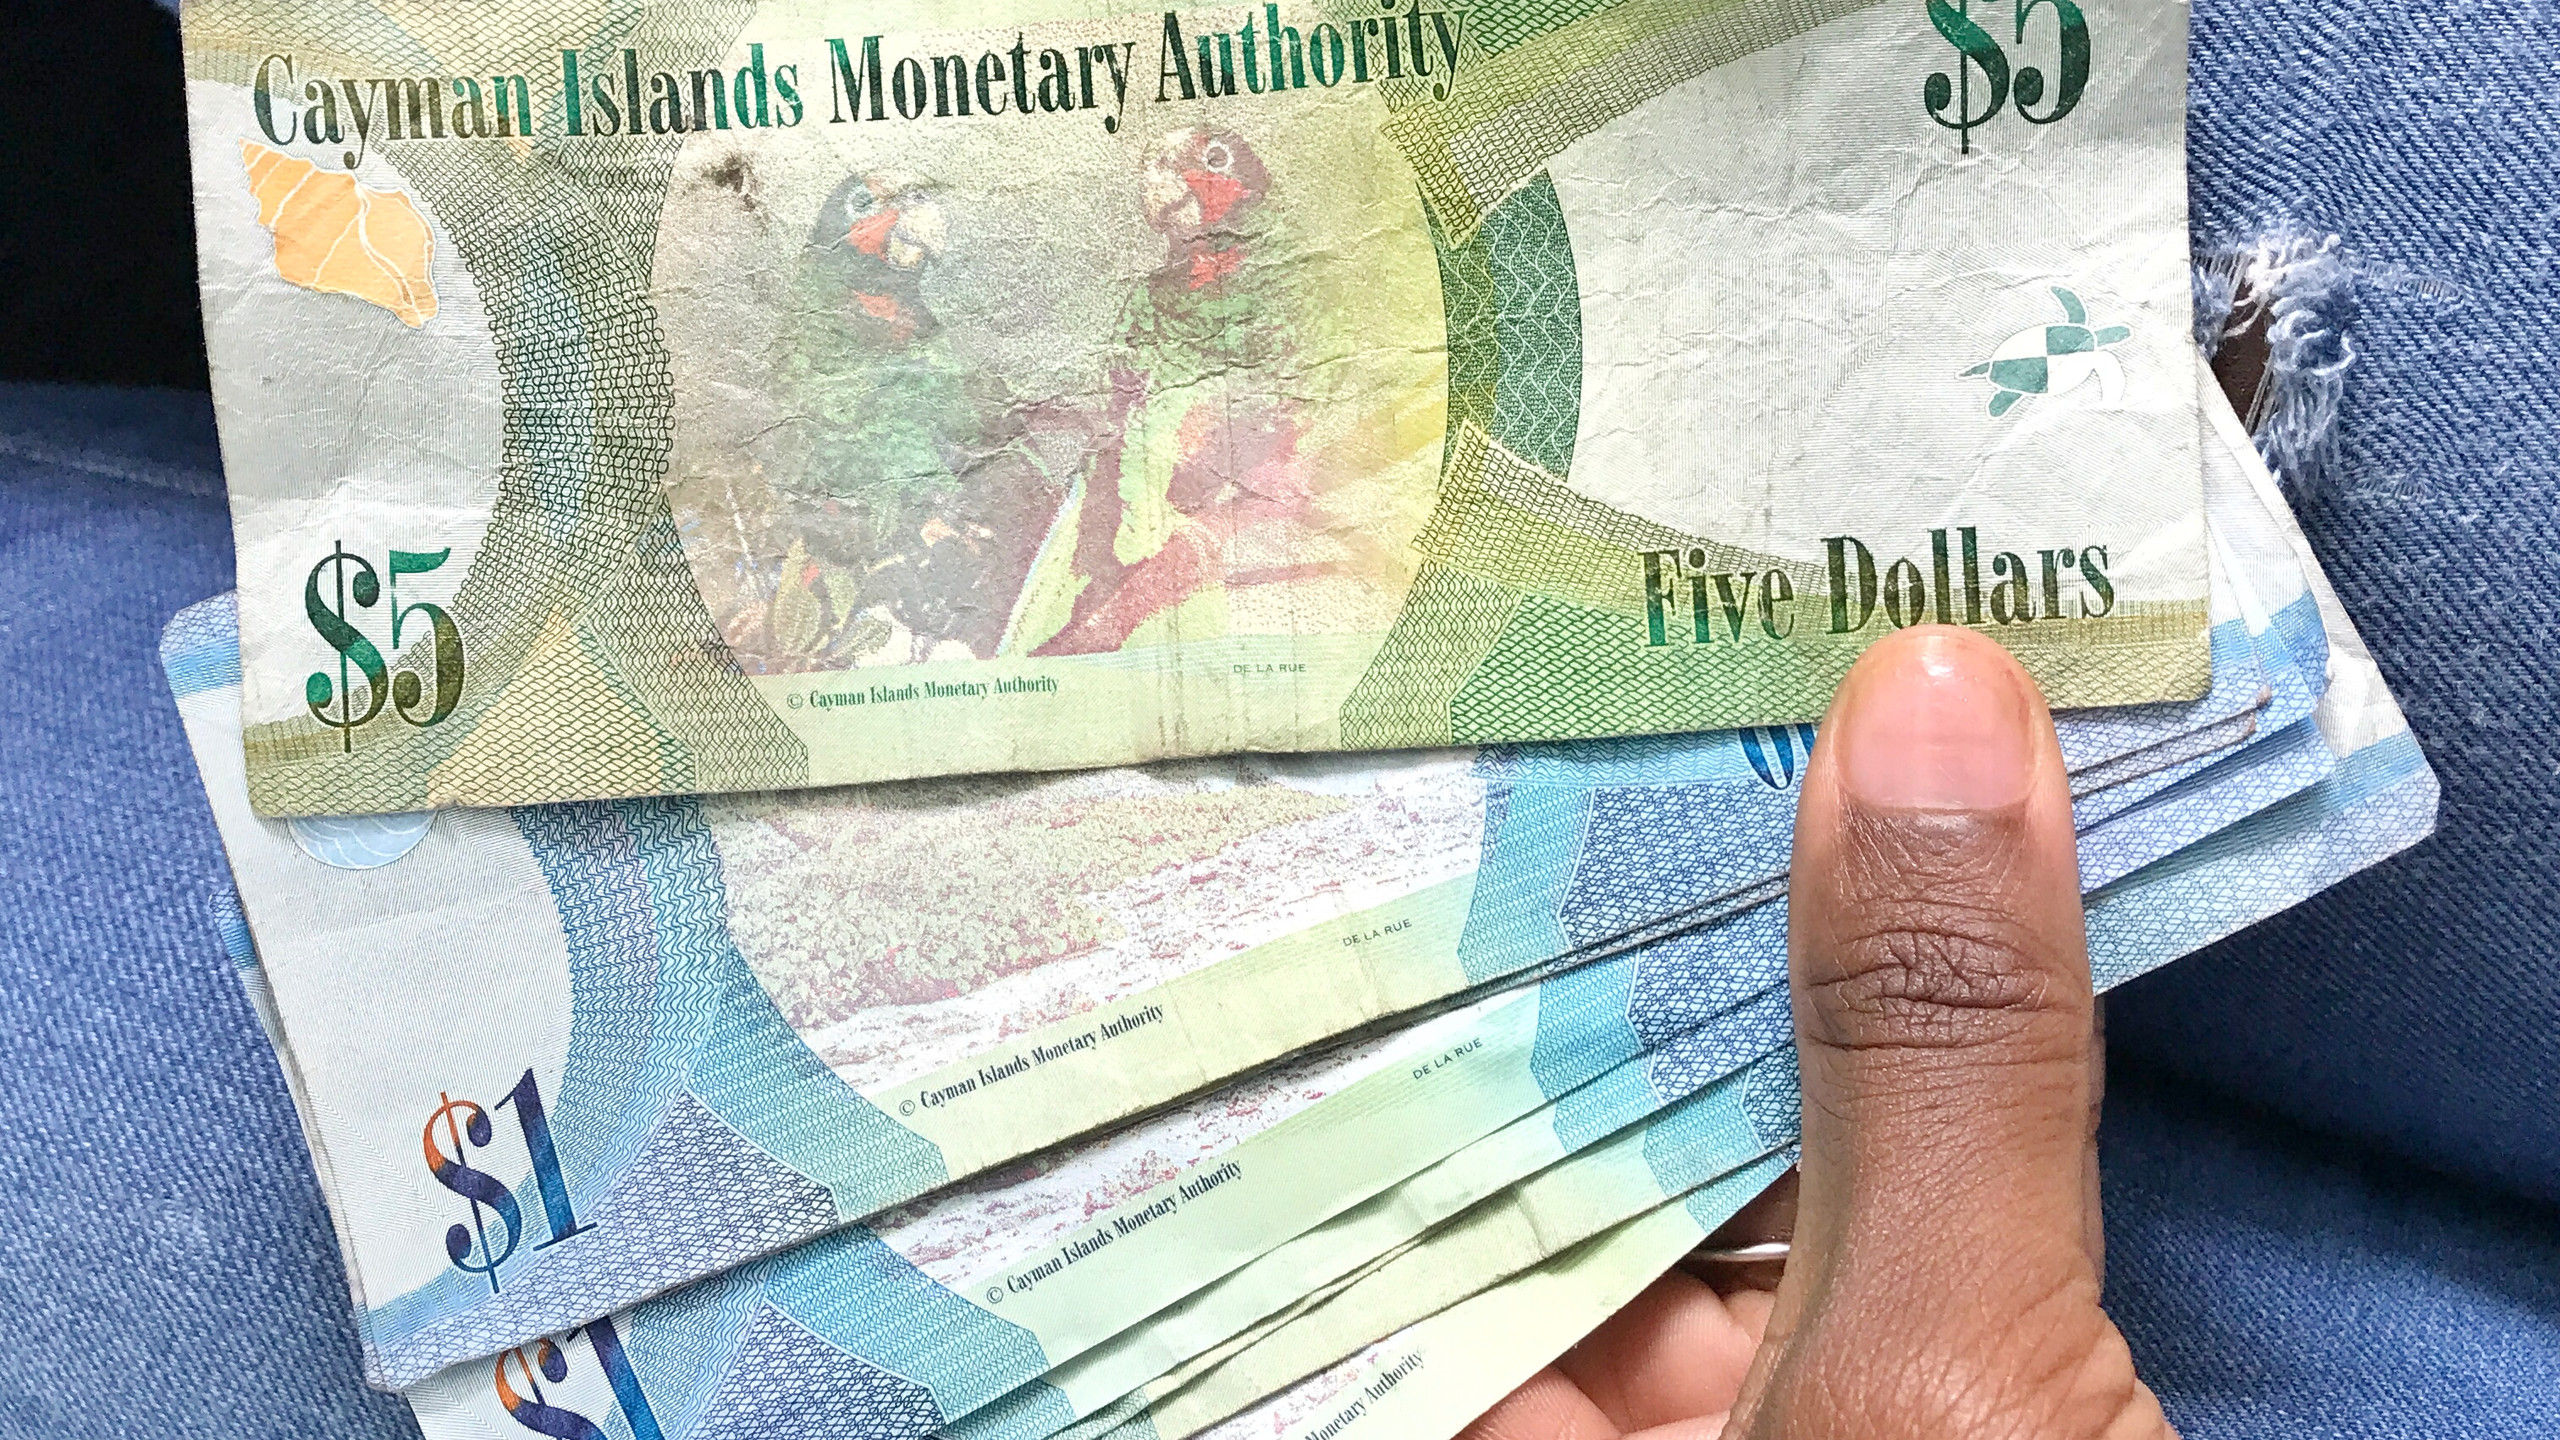 Cayman Islands currency.